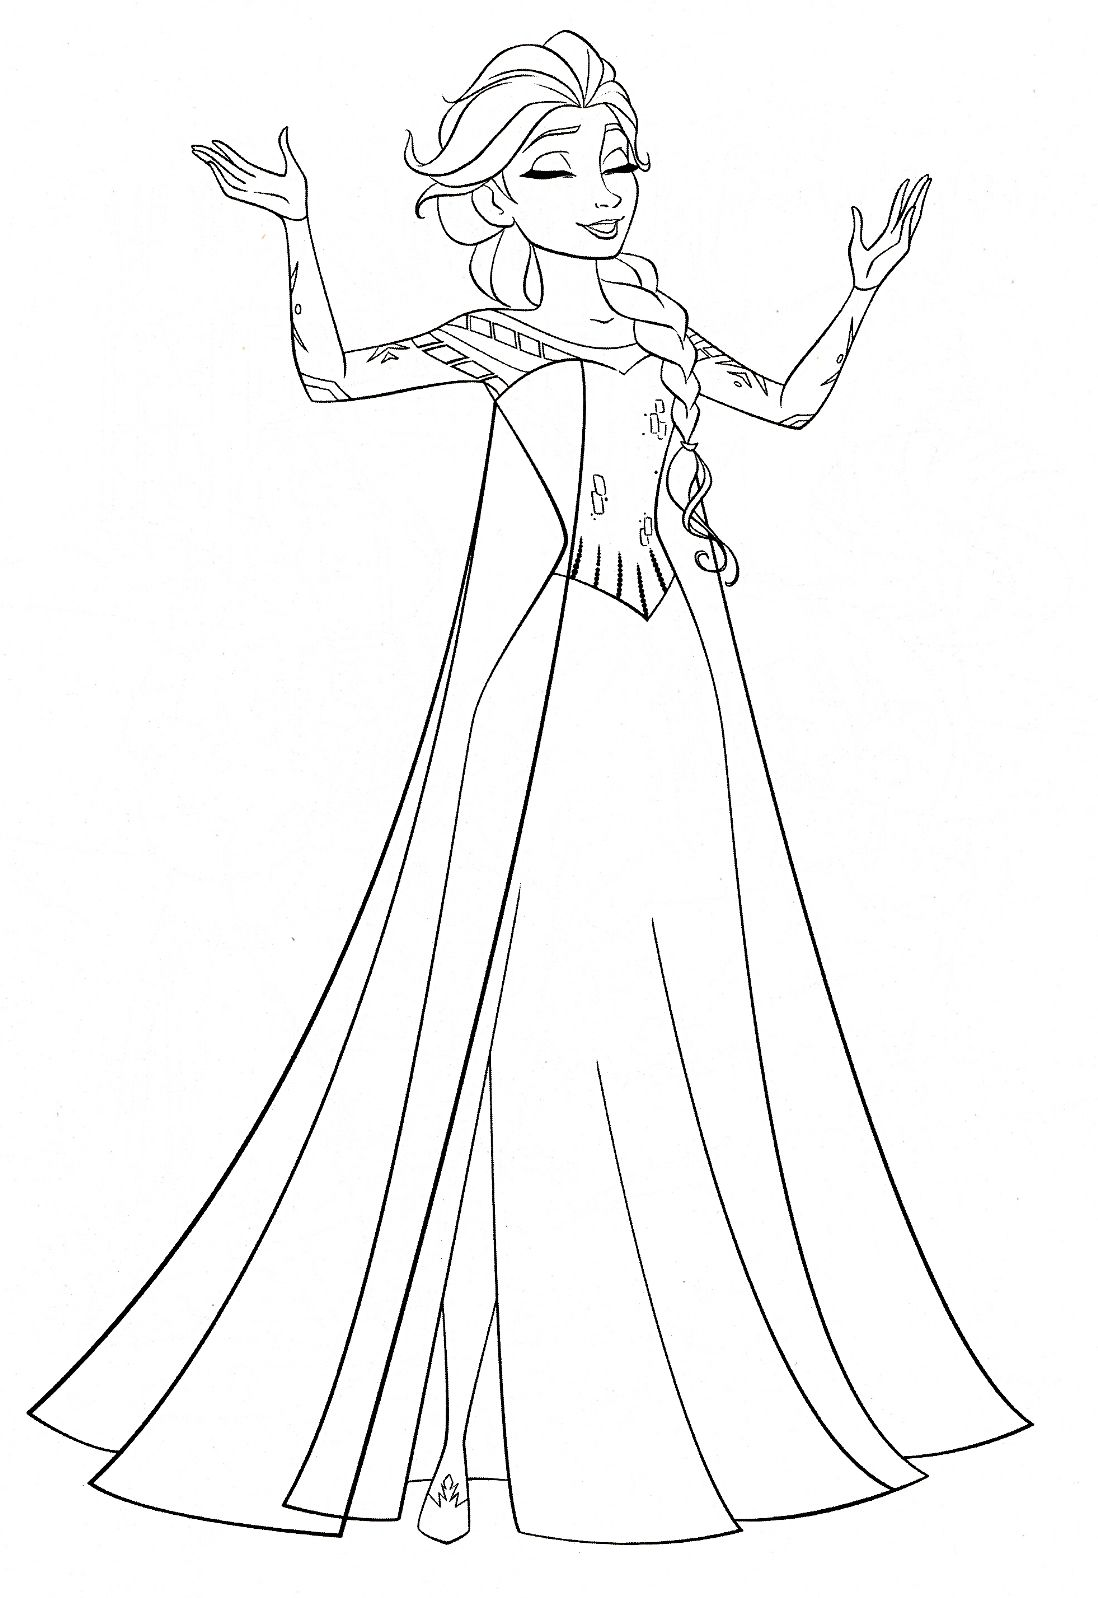 frozen elsa coloring pages jpg 1098 1598 elsa pinterest elsa